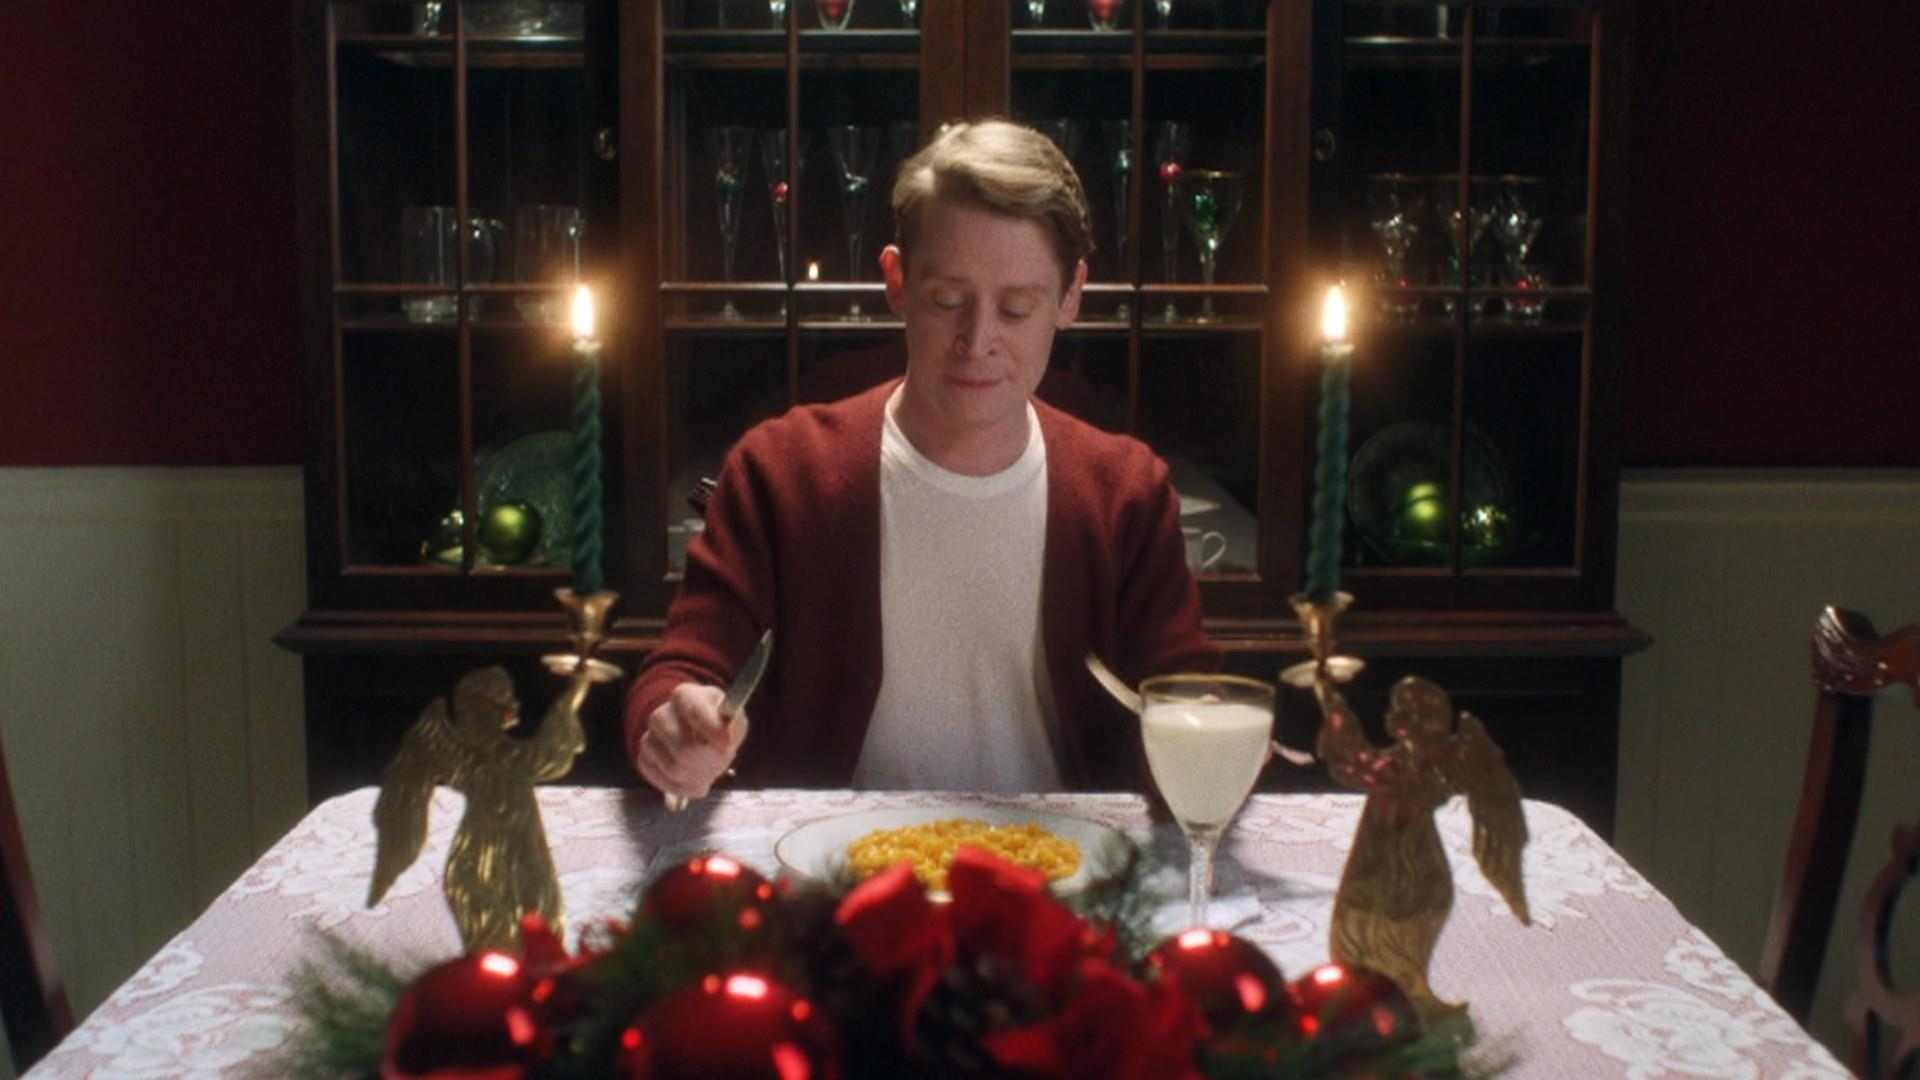 Macaulay Culkin Returns As Kevin From Home Alone In Google Ad